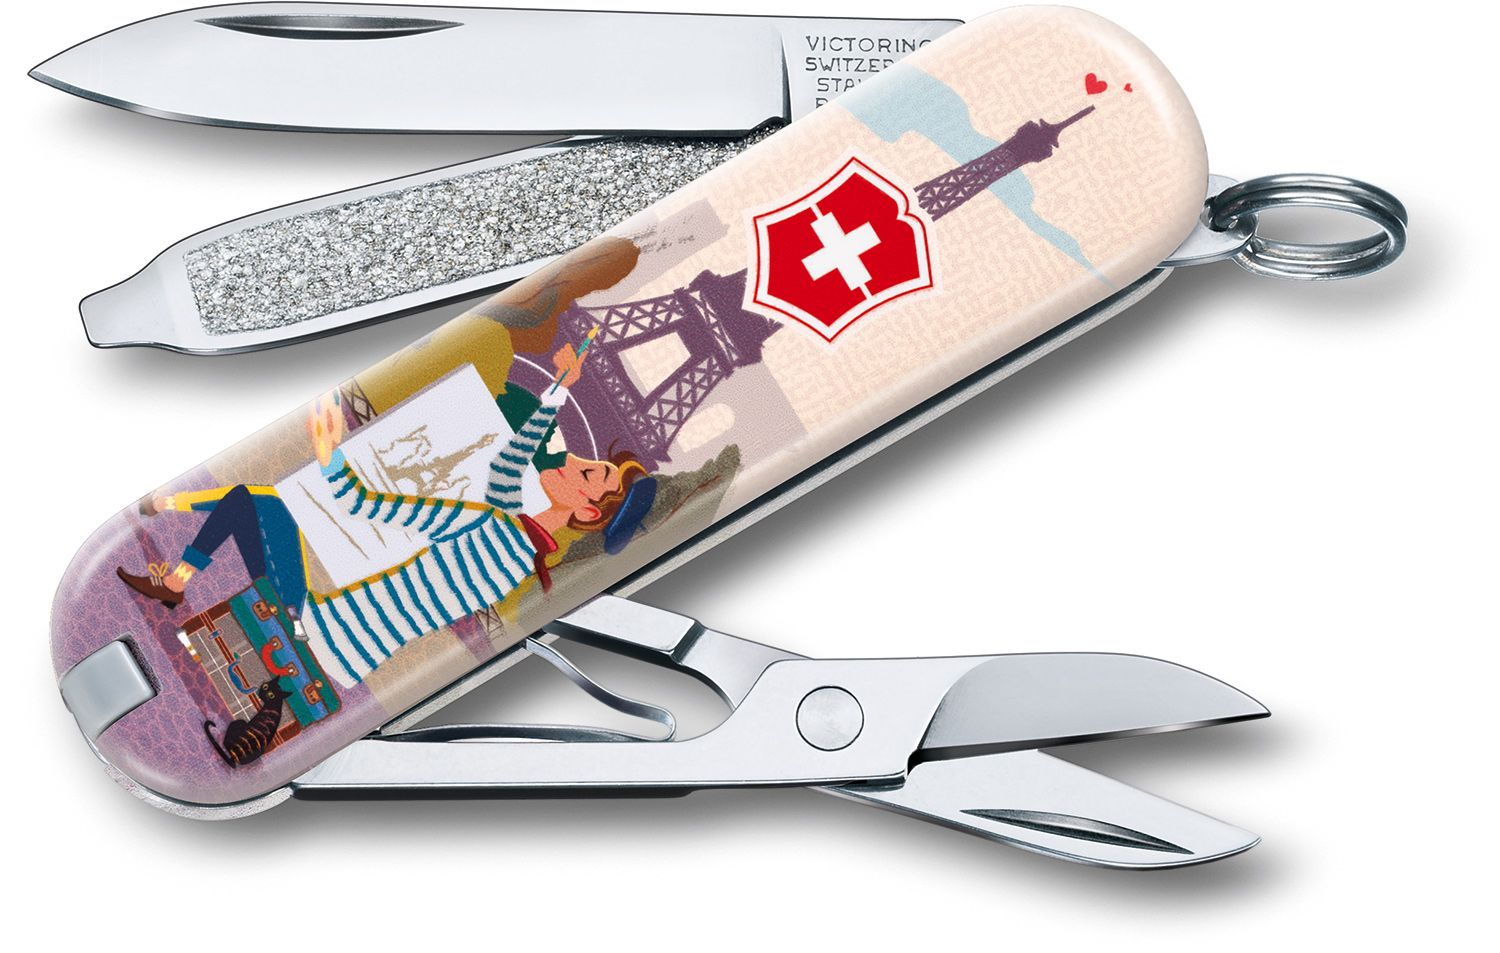 Victorinox Swiss Army Contest Classic SD Limited Edition 2018 Multi-Tool, City of Love, 2.25 inch Closed